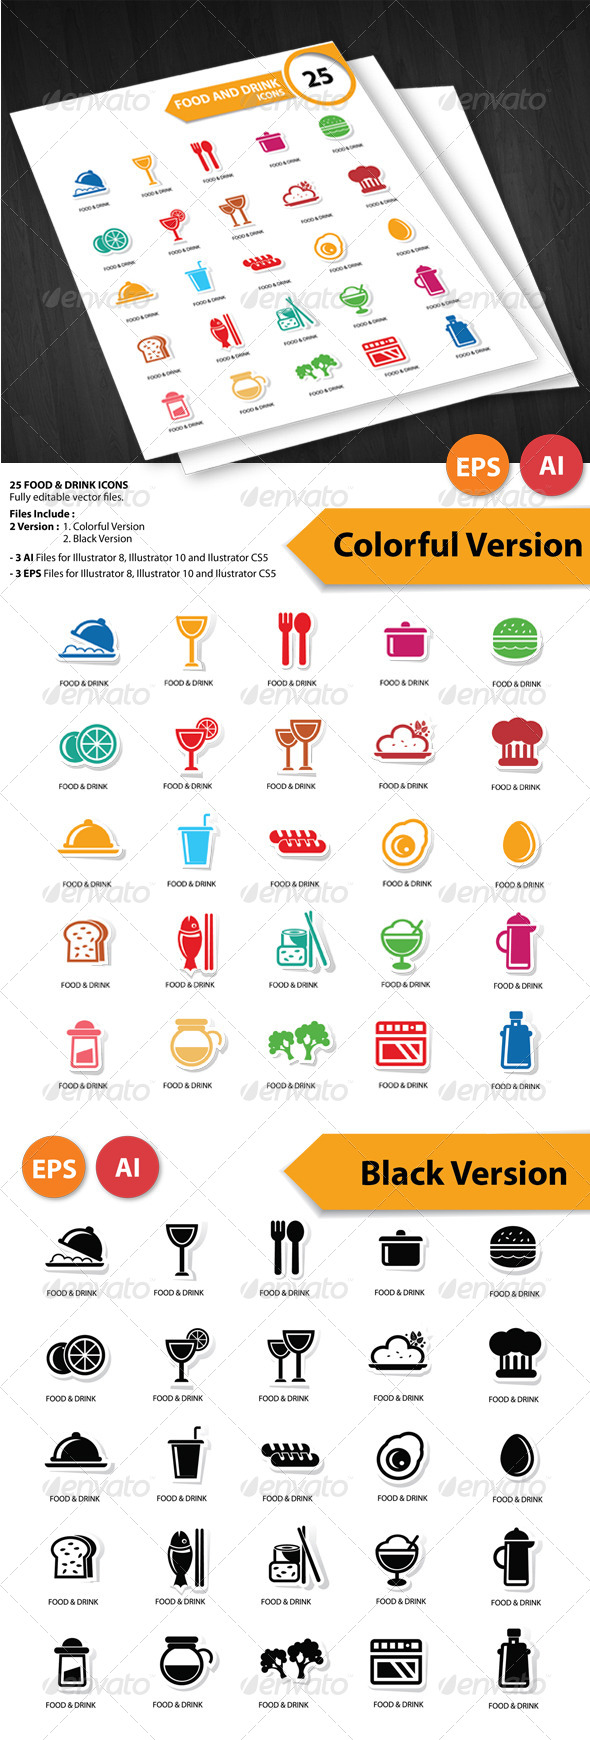 GraphicRiver 25 Food & Drink Icons 5772164